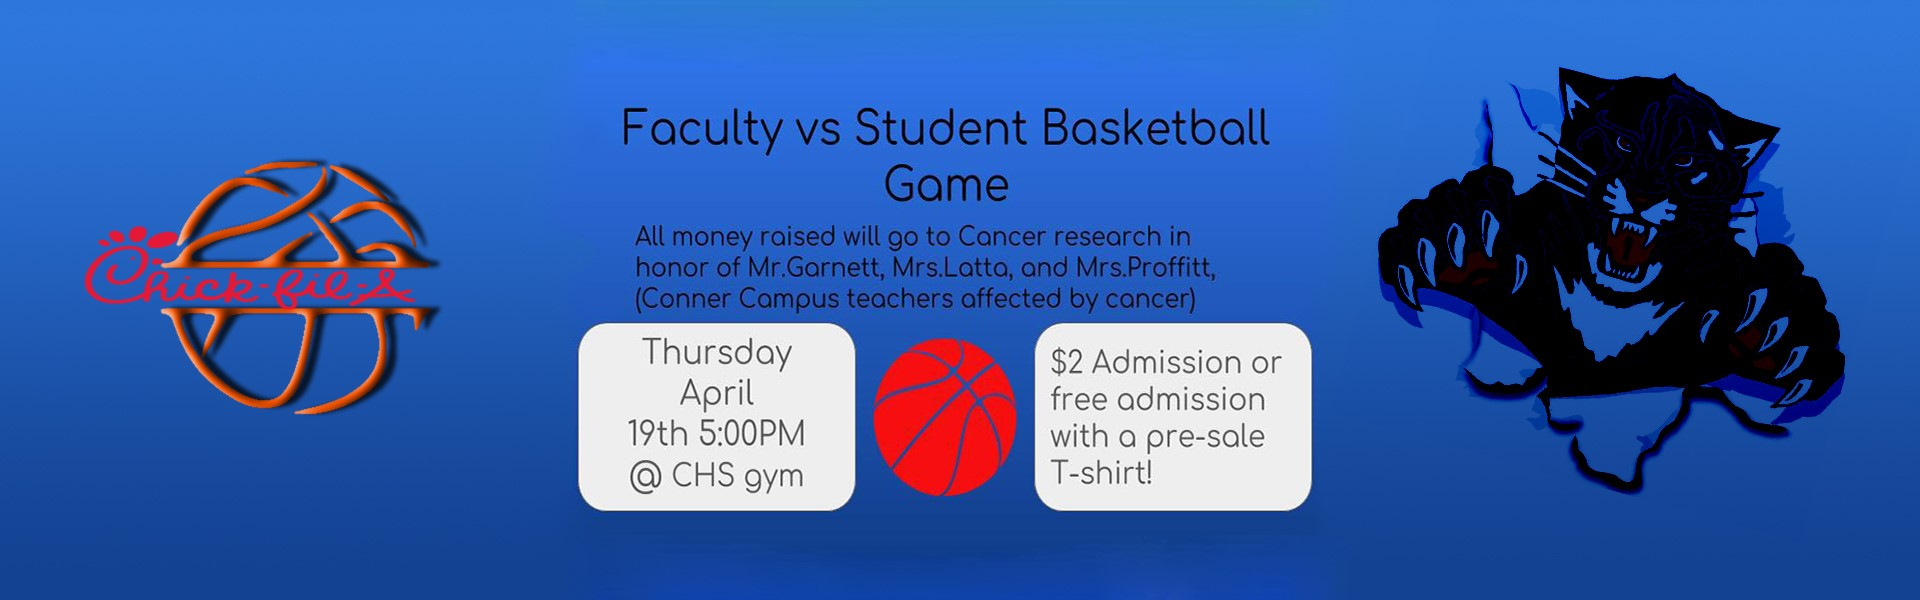 Faculty vs Student Basketball Game